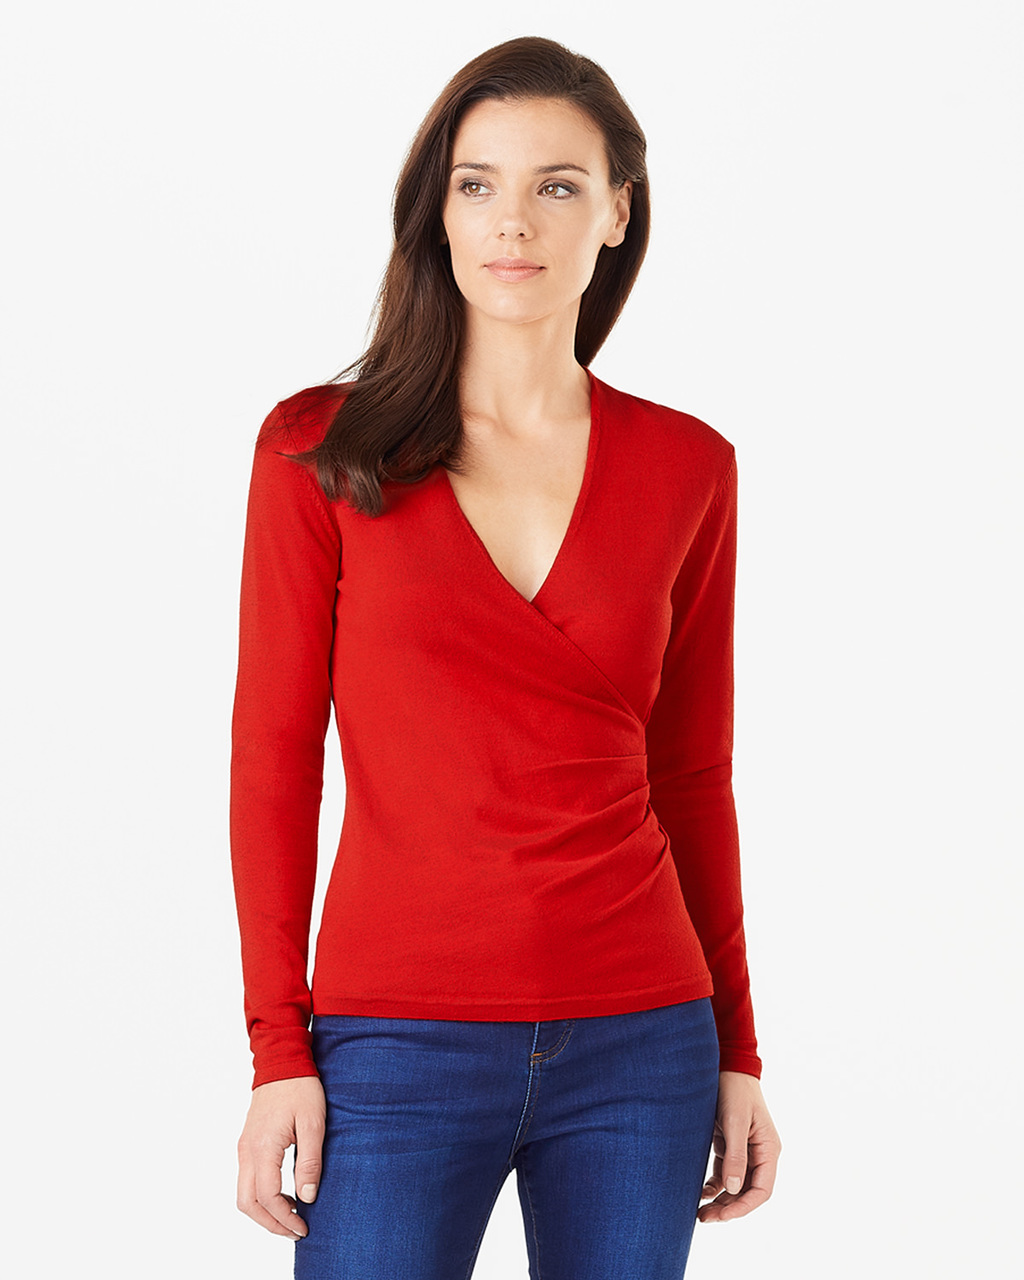 Wilma Wrap Knit - neckline: low v-neck; pattern: plain; style: wrap; predominant colour: true red; occasions: casual; length: standard; fit: slim fit; sleeve length: long sleeve; sleeve style: standard; texture group: knits/crochet; pattern type: fabric; fibres: viscose/rayon - mix; season: s/s 2016